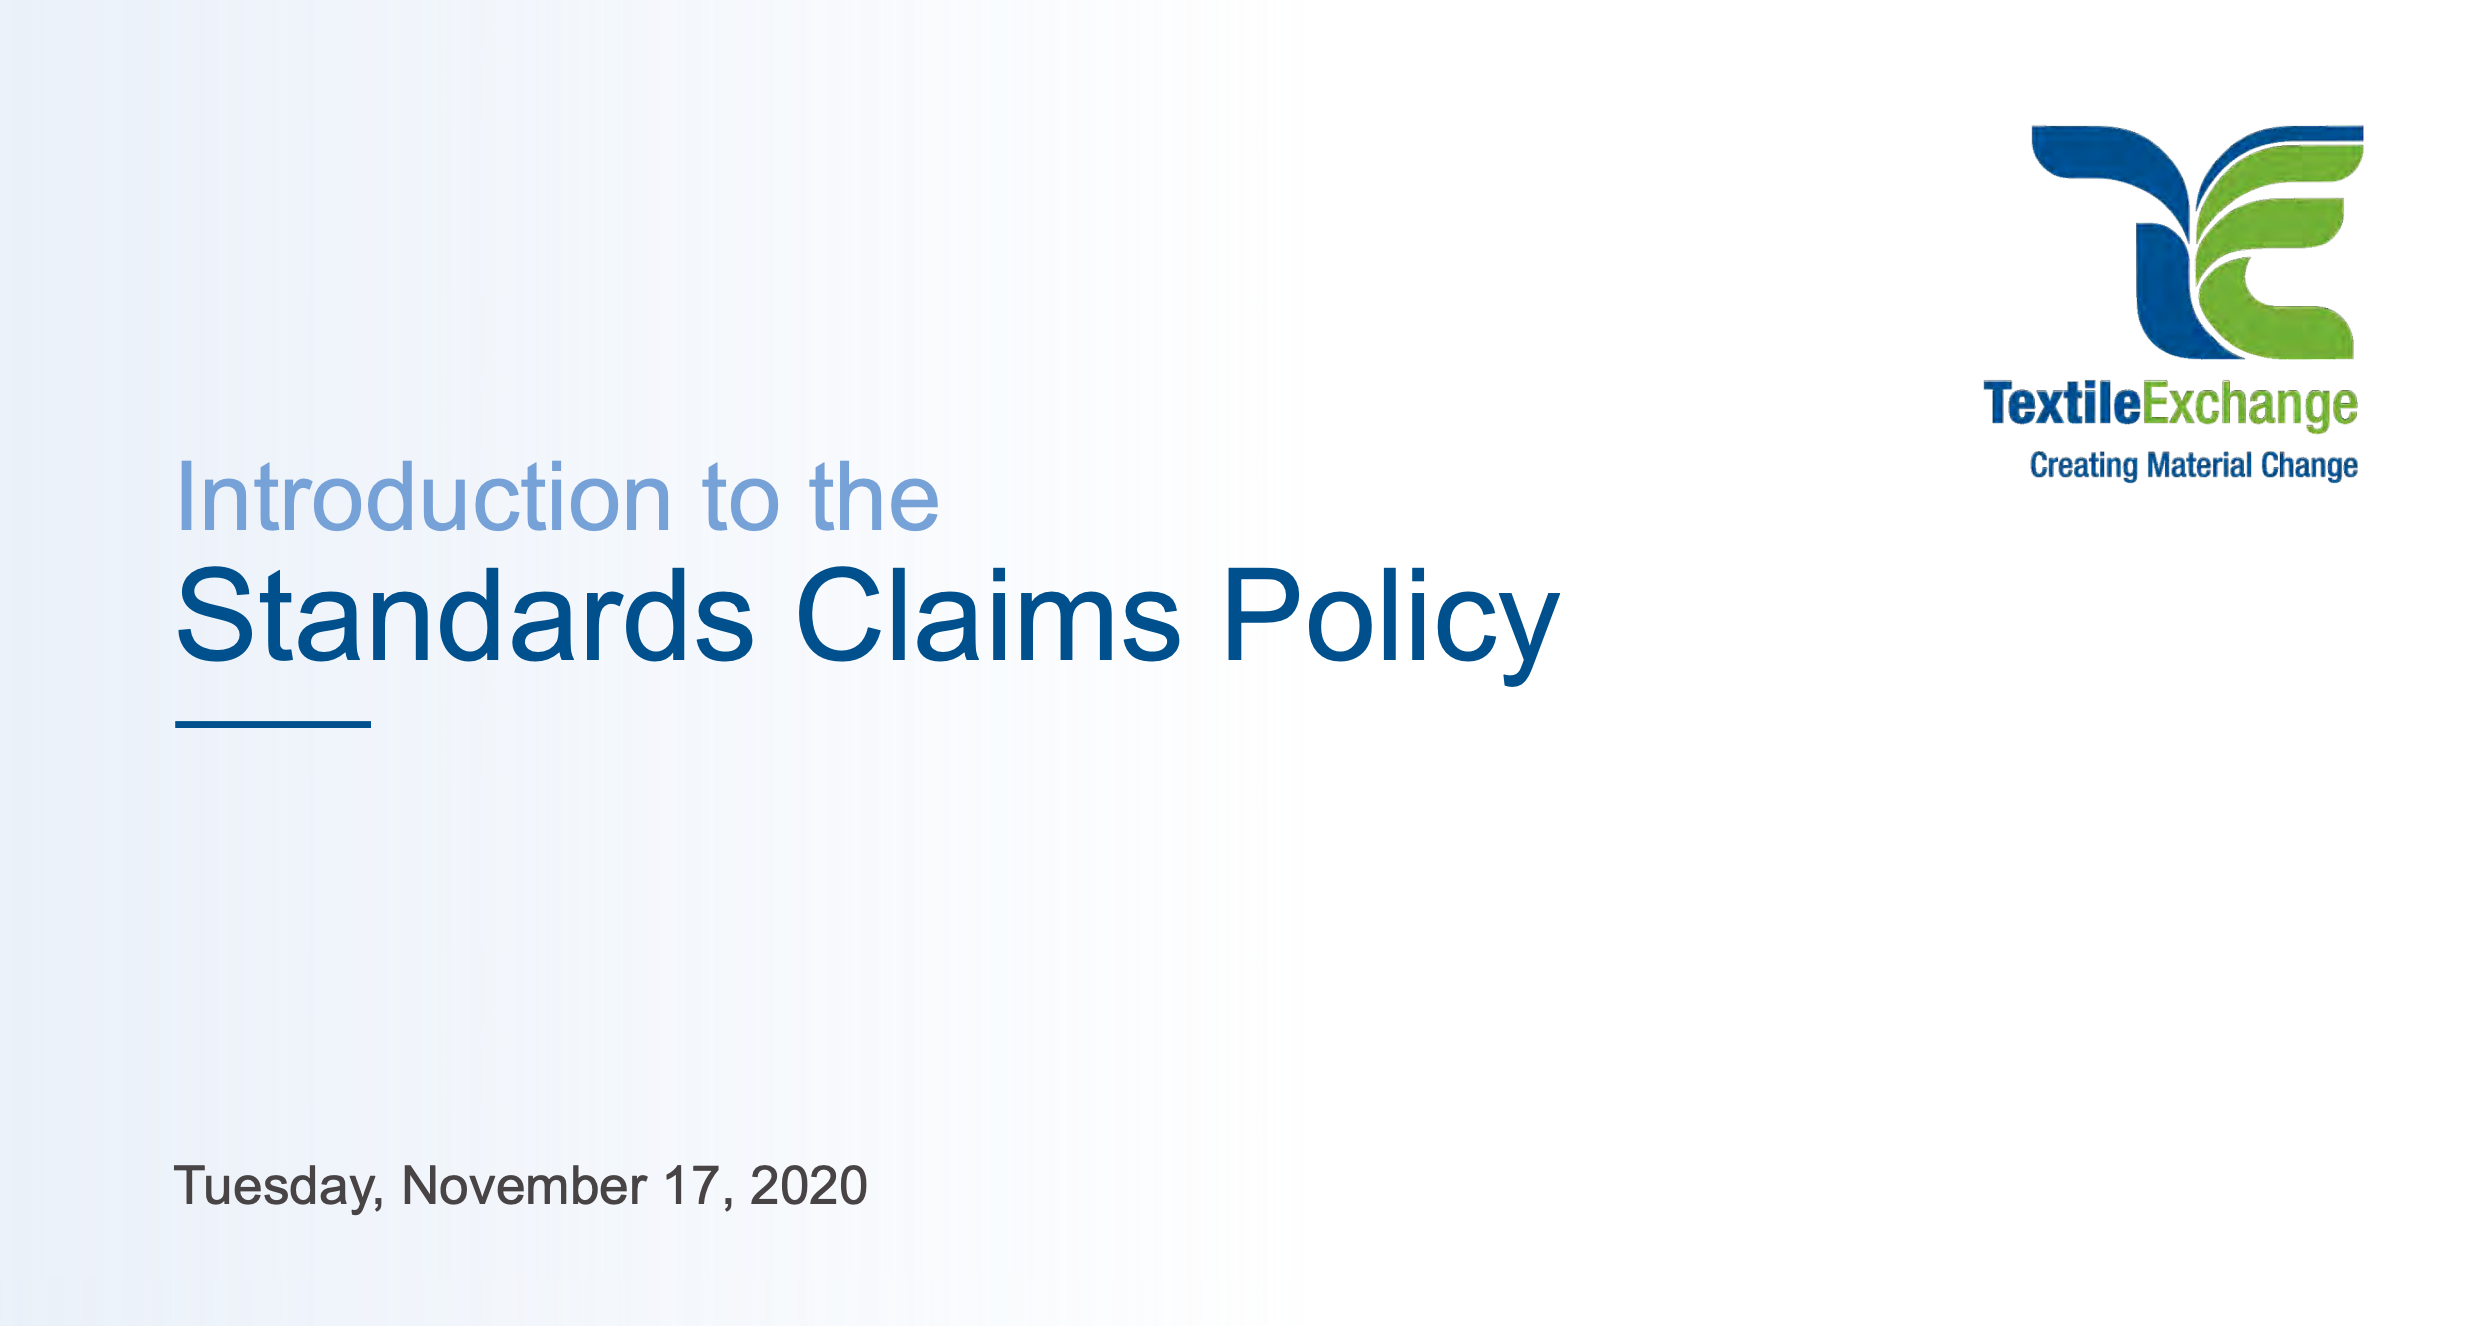 Standards Claims Policy